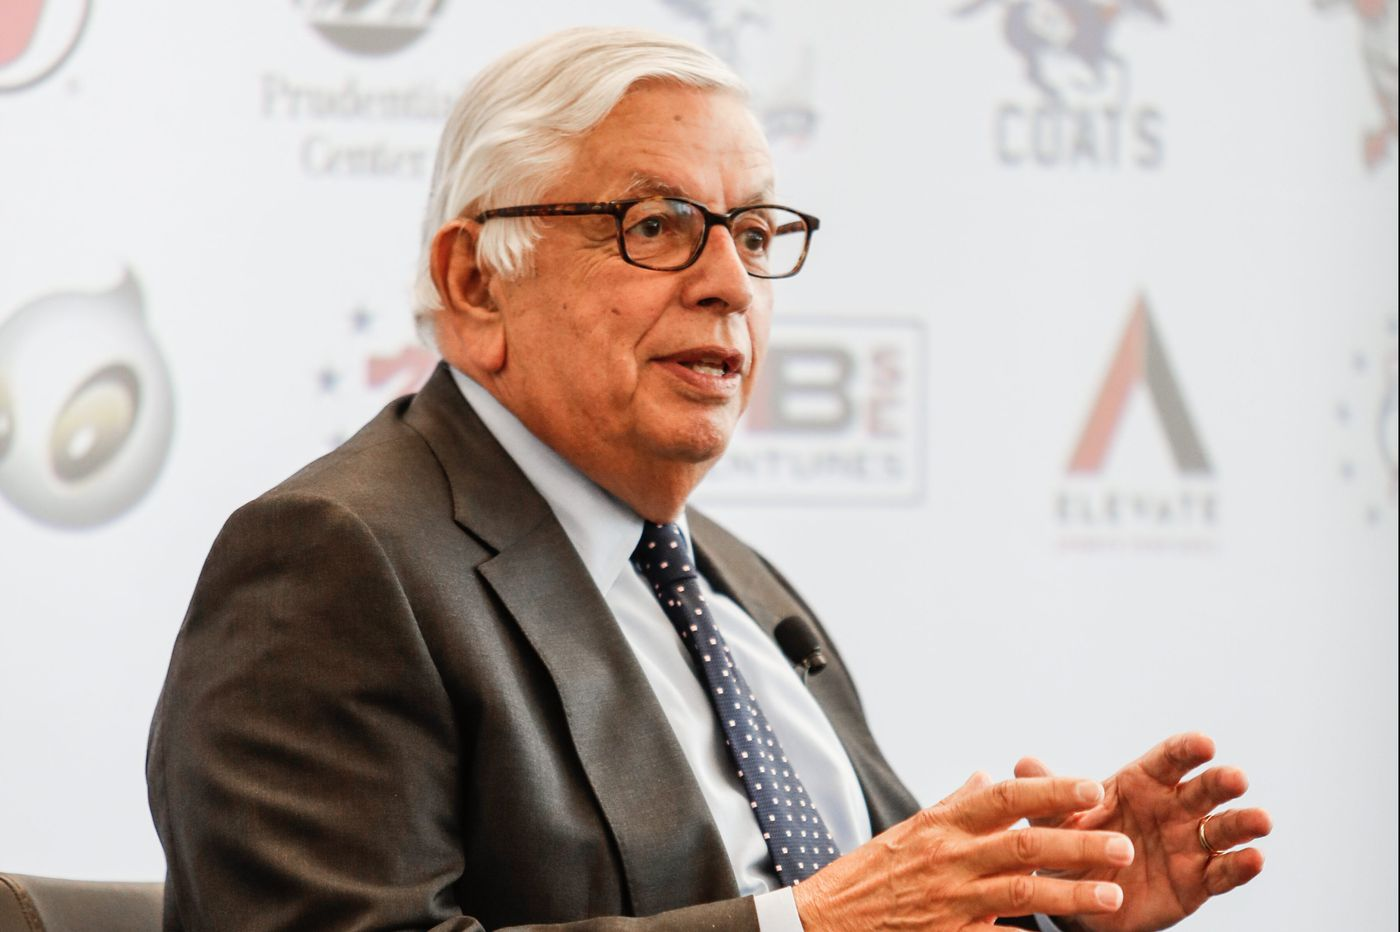 David Stern offers views on LeBron James, Donald Trump and national anthem protests | Marcus Hayes